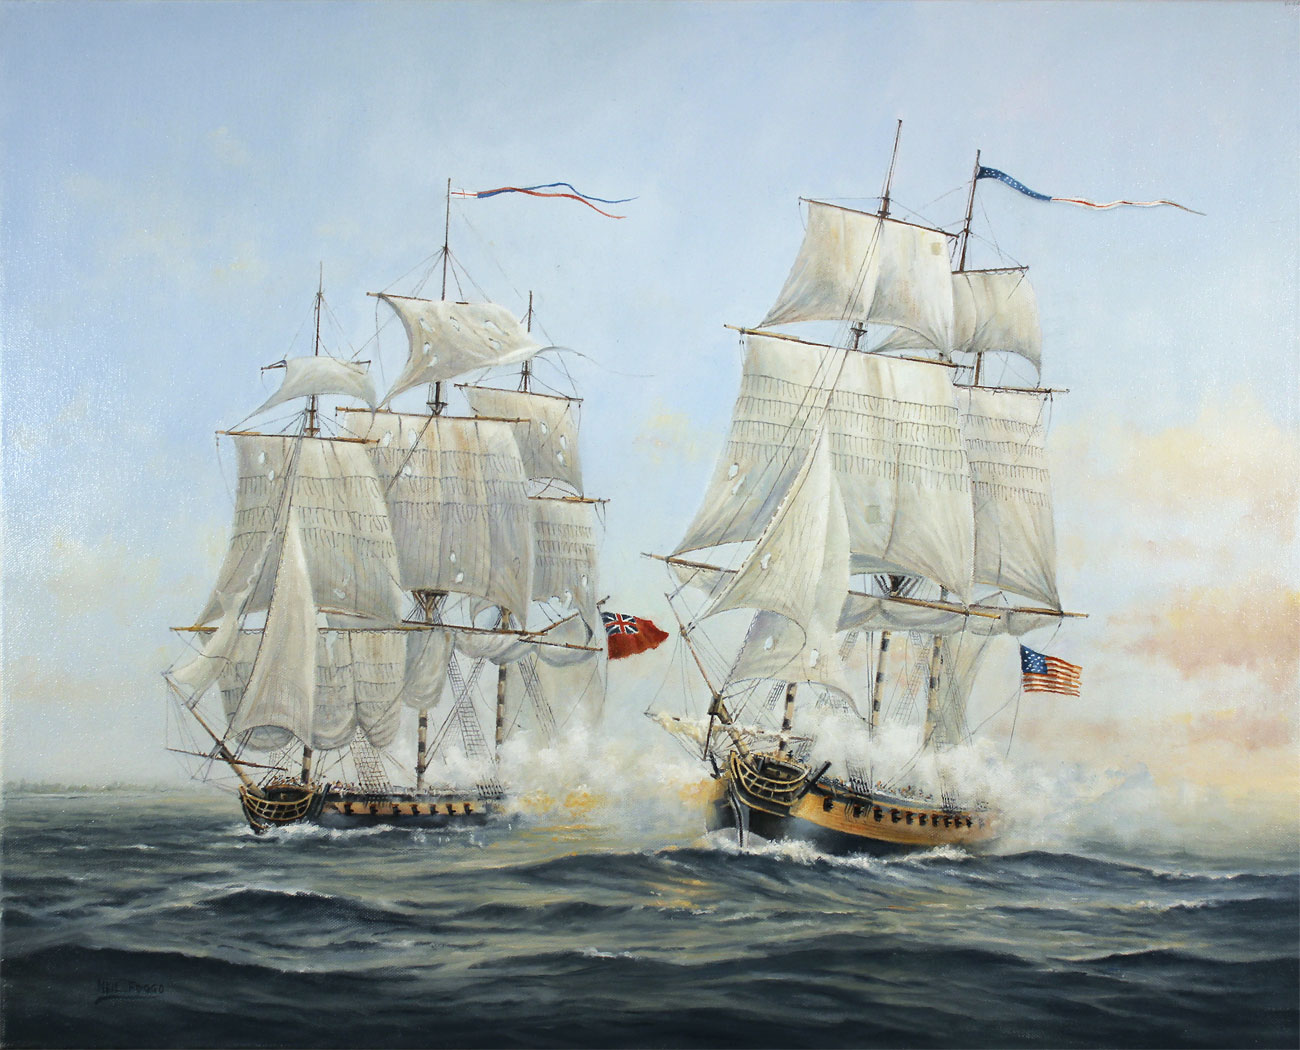 Neil Foggo, Original oil painting on canvas, A Battle Joined Click to enlarge